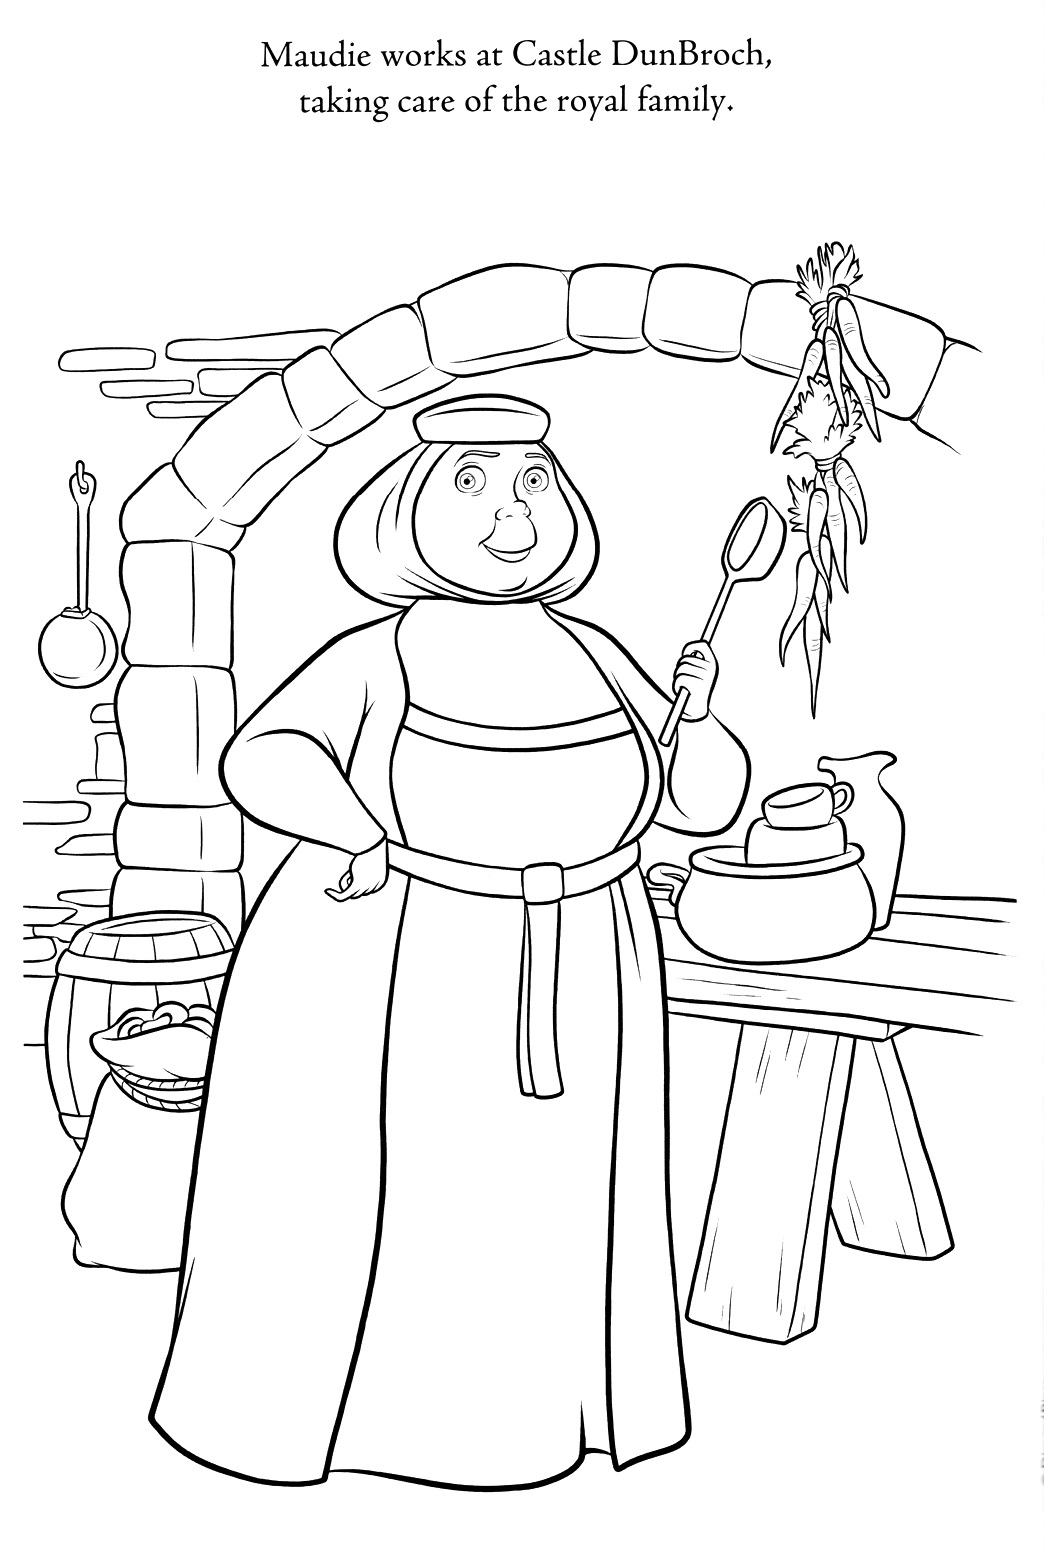 coloring printouts for kids horse coloring pages for kids coloring pages for kids coloring kids printouts for